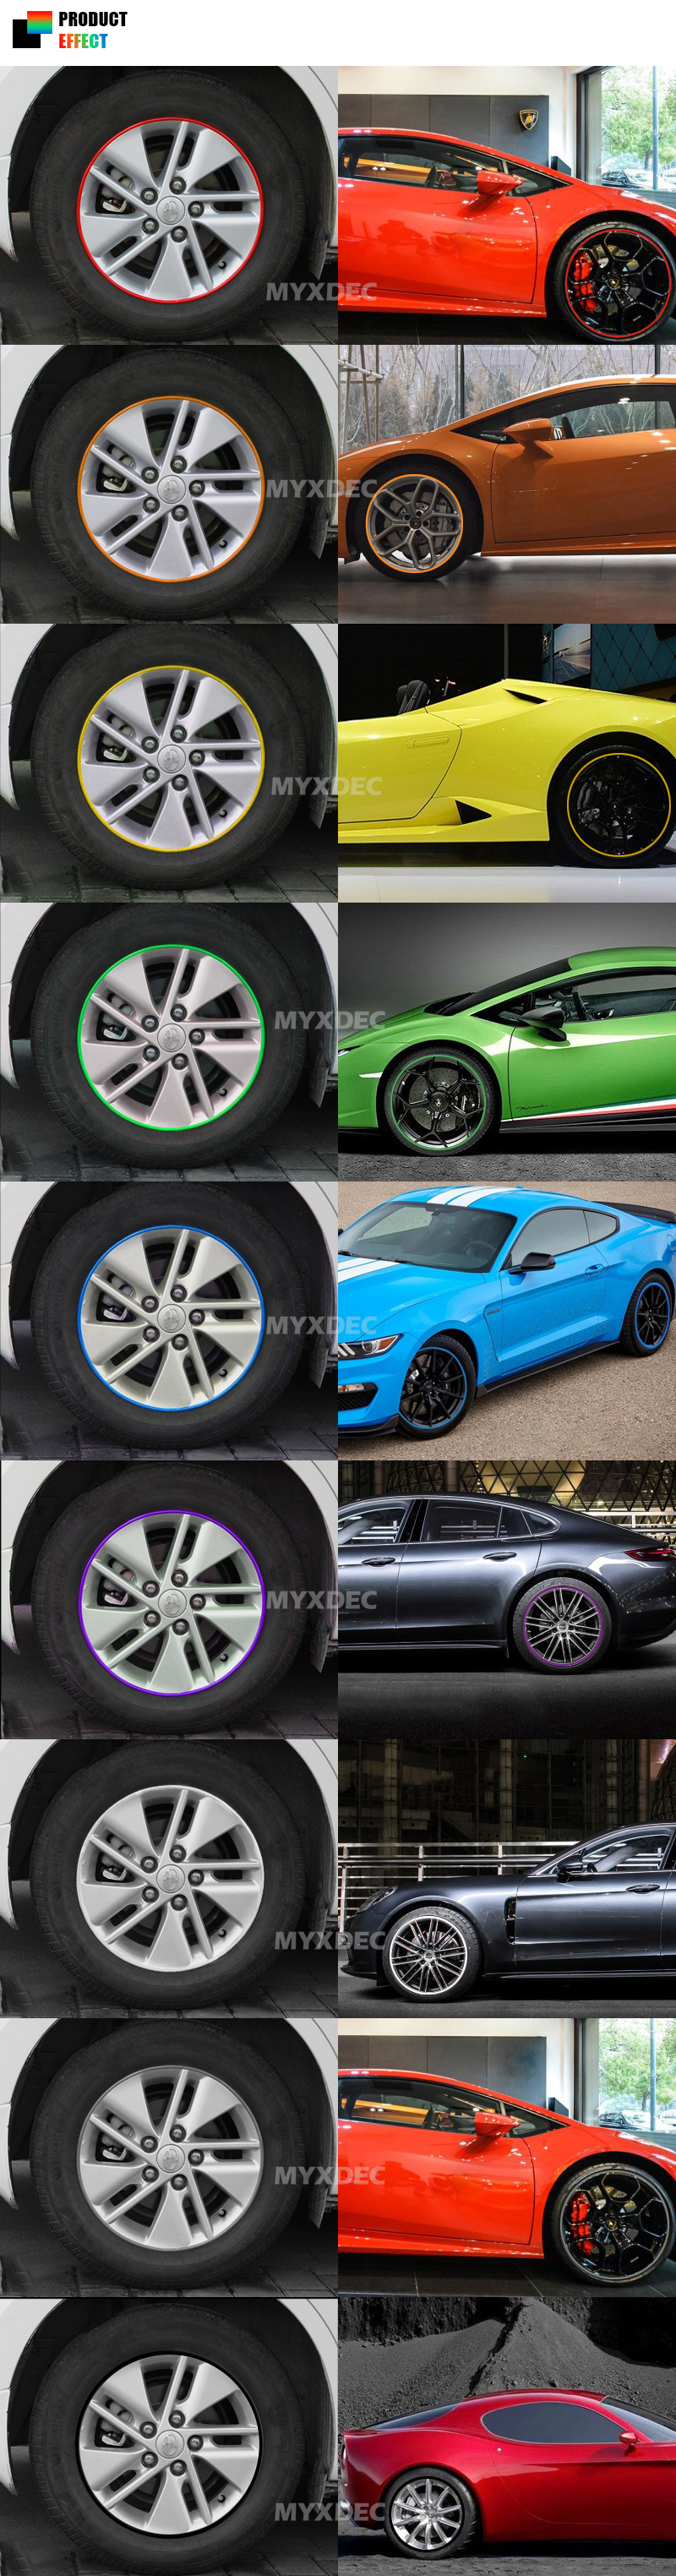 8 M Car Motorcycle Wheel Hub Tire Sticker Decorative Strip Cool Cold Ice2 Cooling Pad 156 Inch 01 02 4